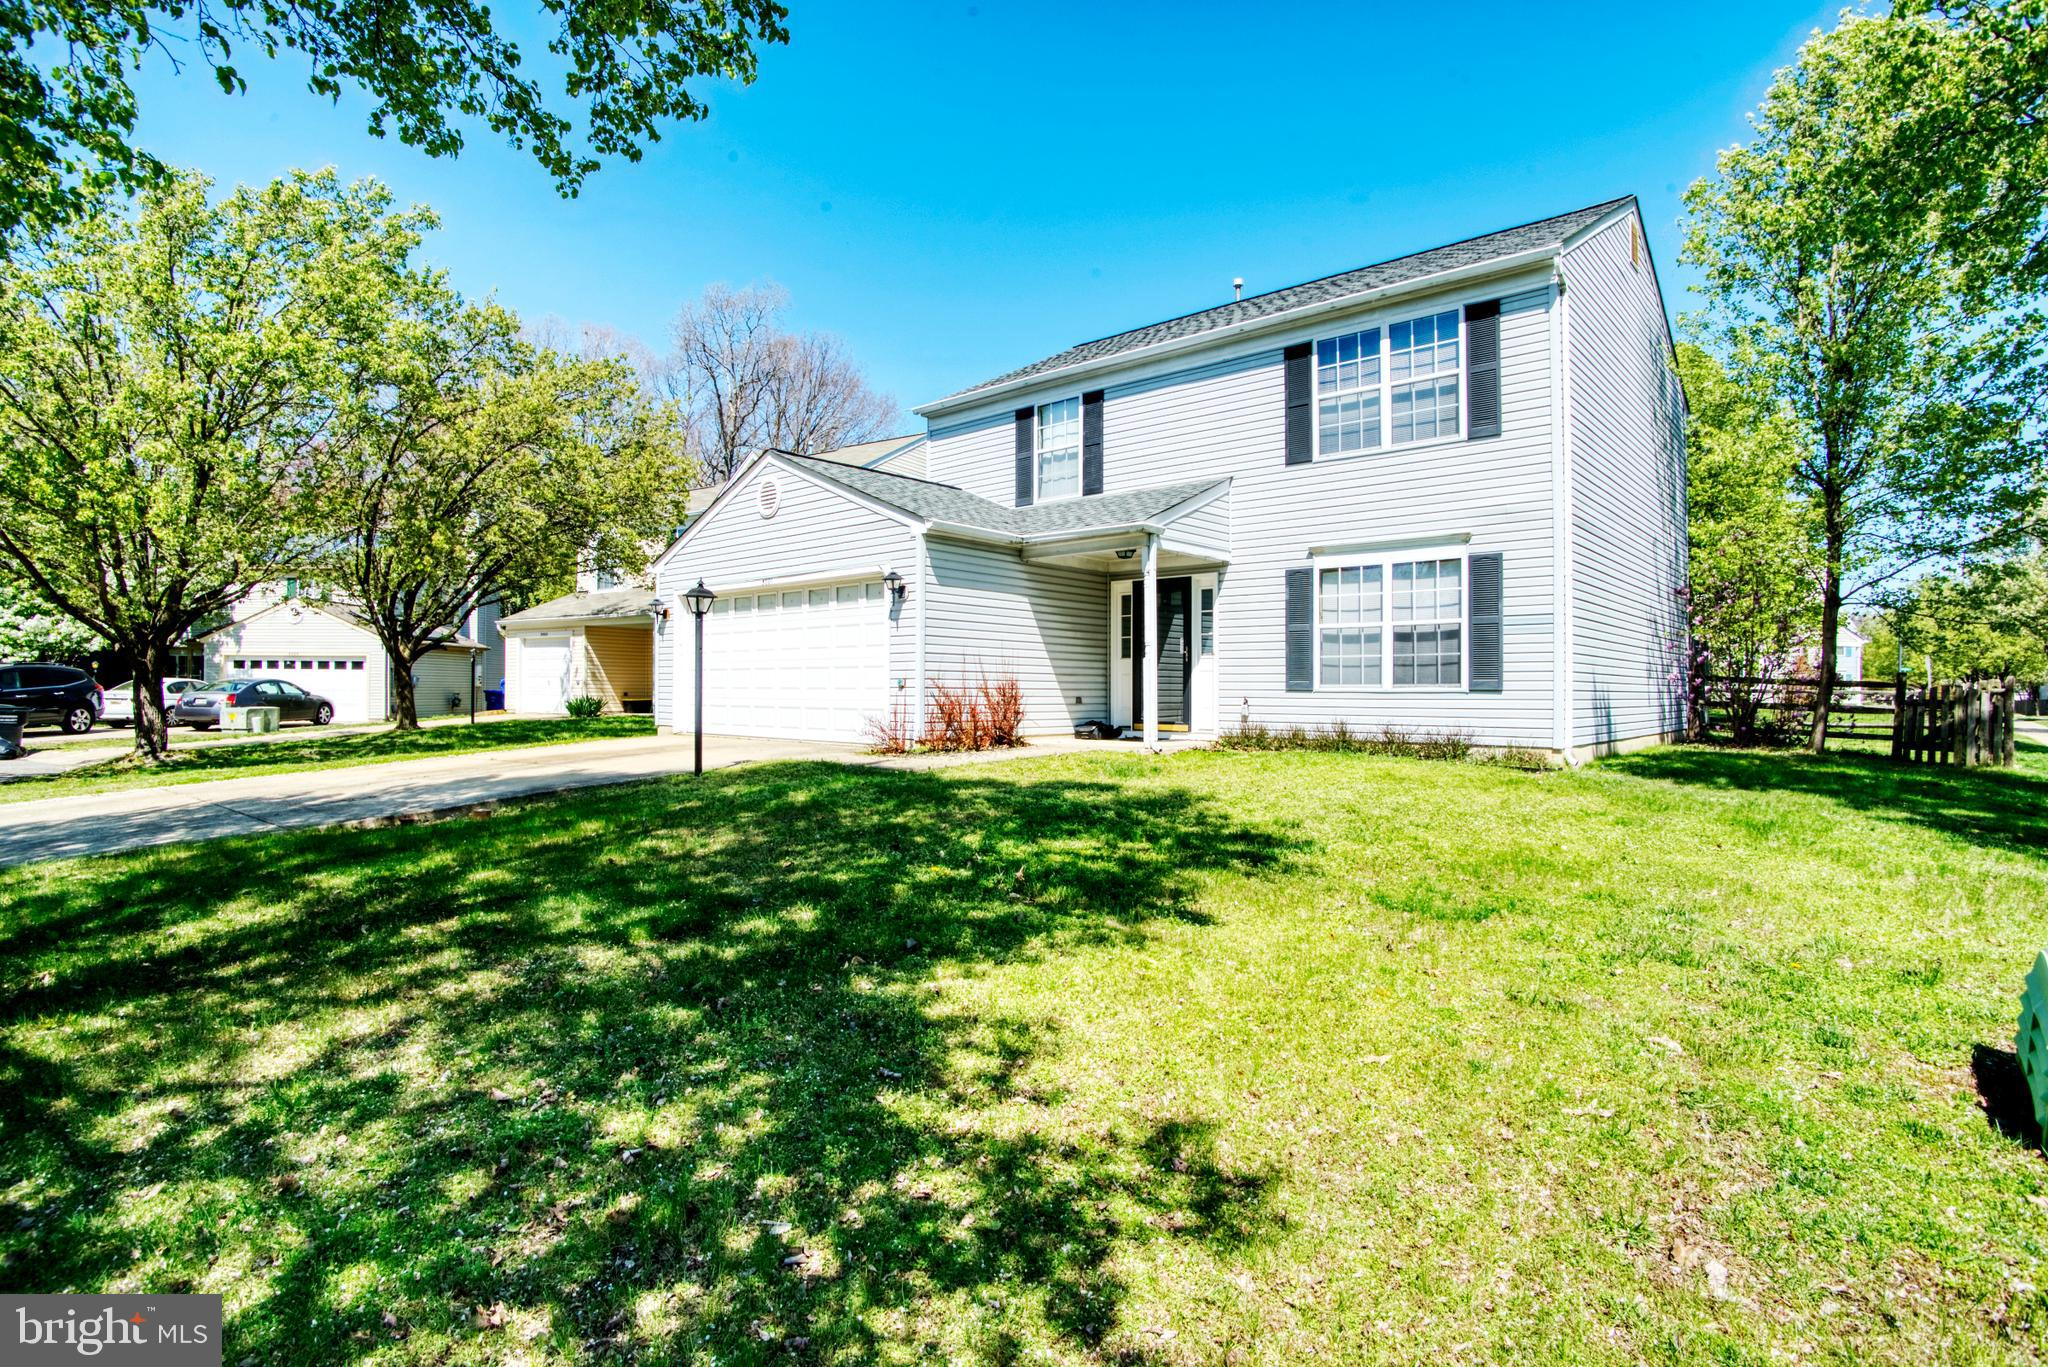 Bright and Spacious Starter Home!! This colonial sits on a landscaped, premium corner lot in a cul-d